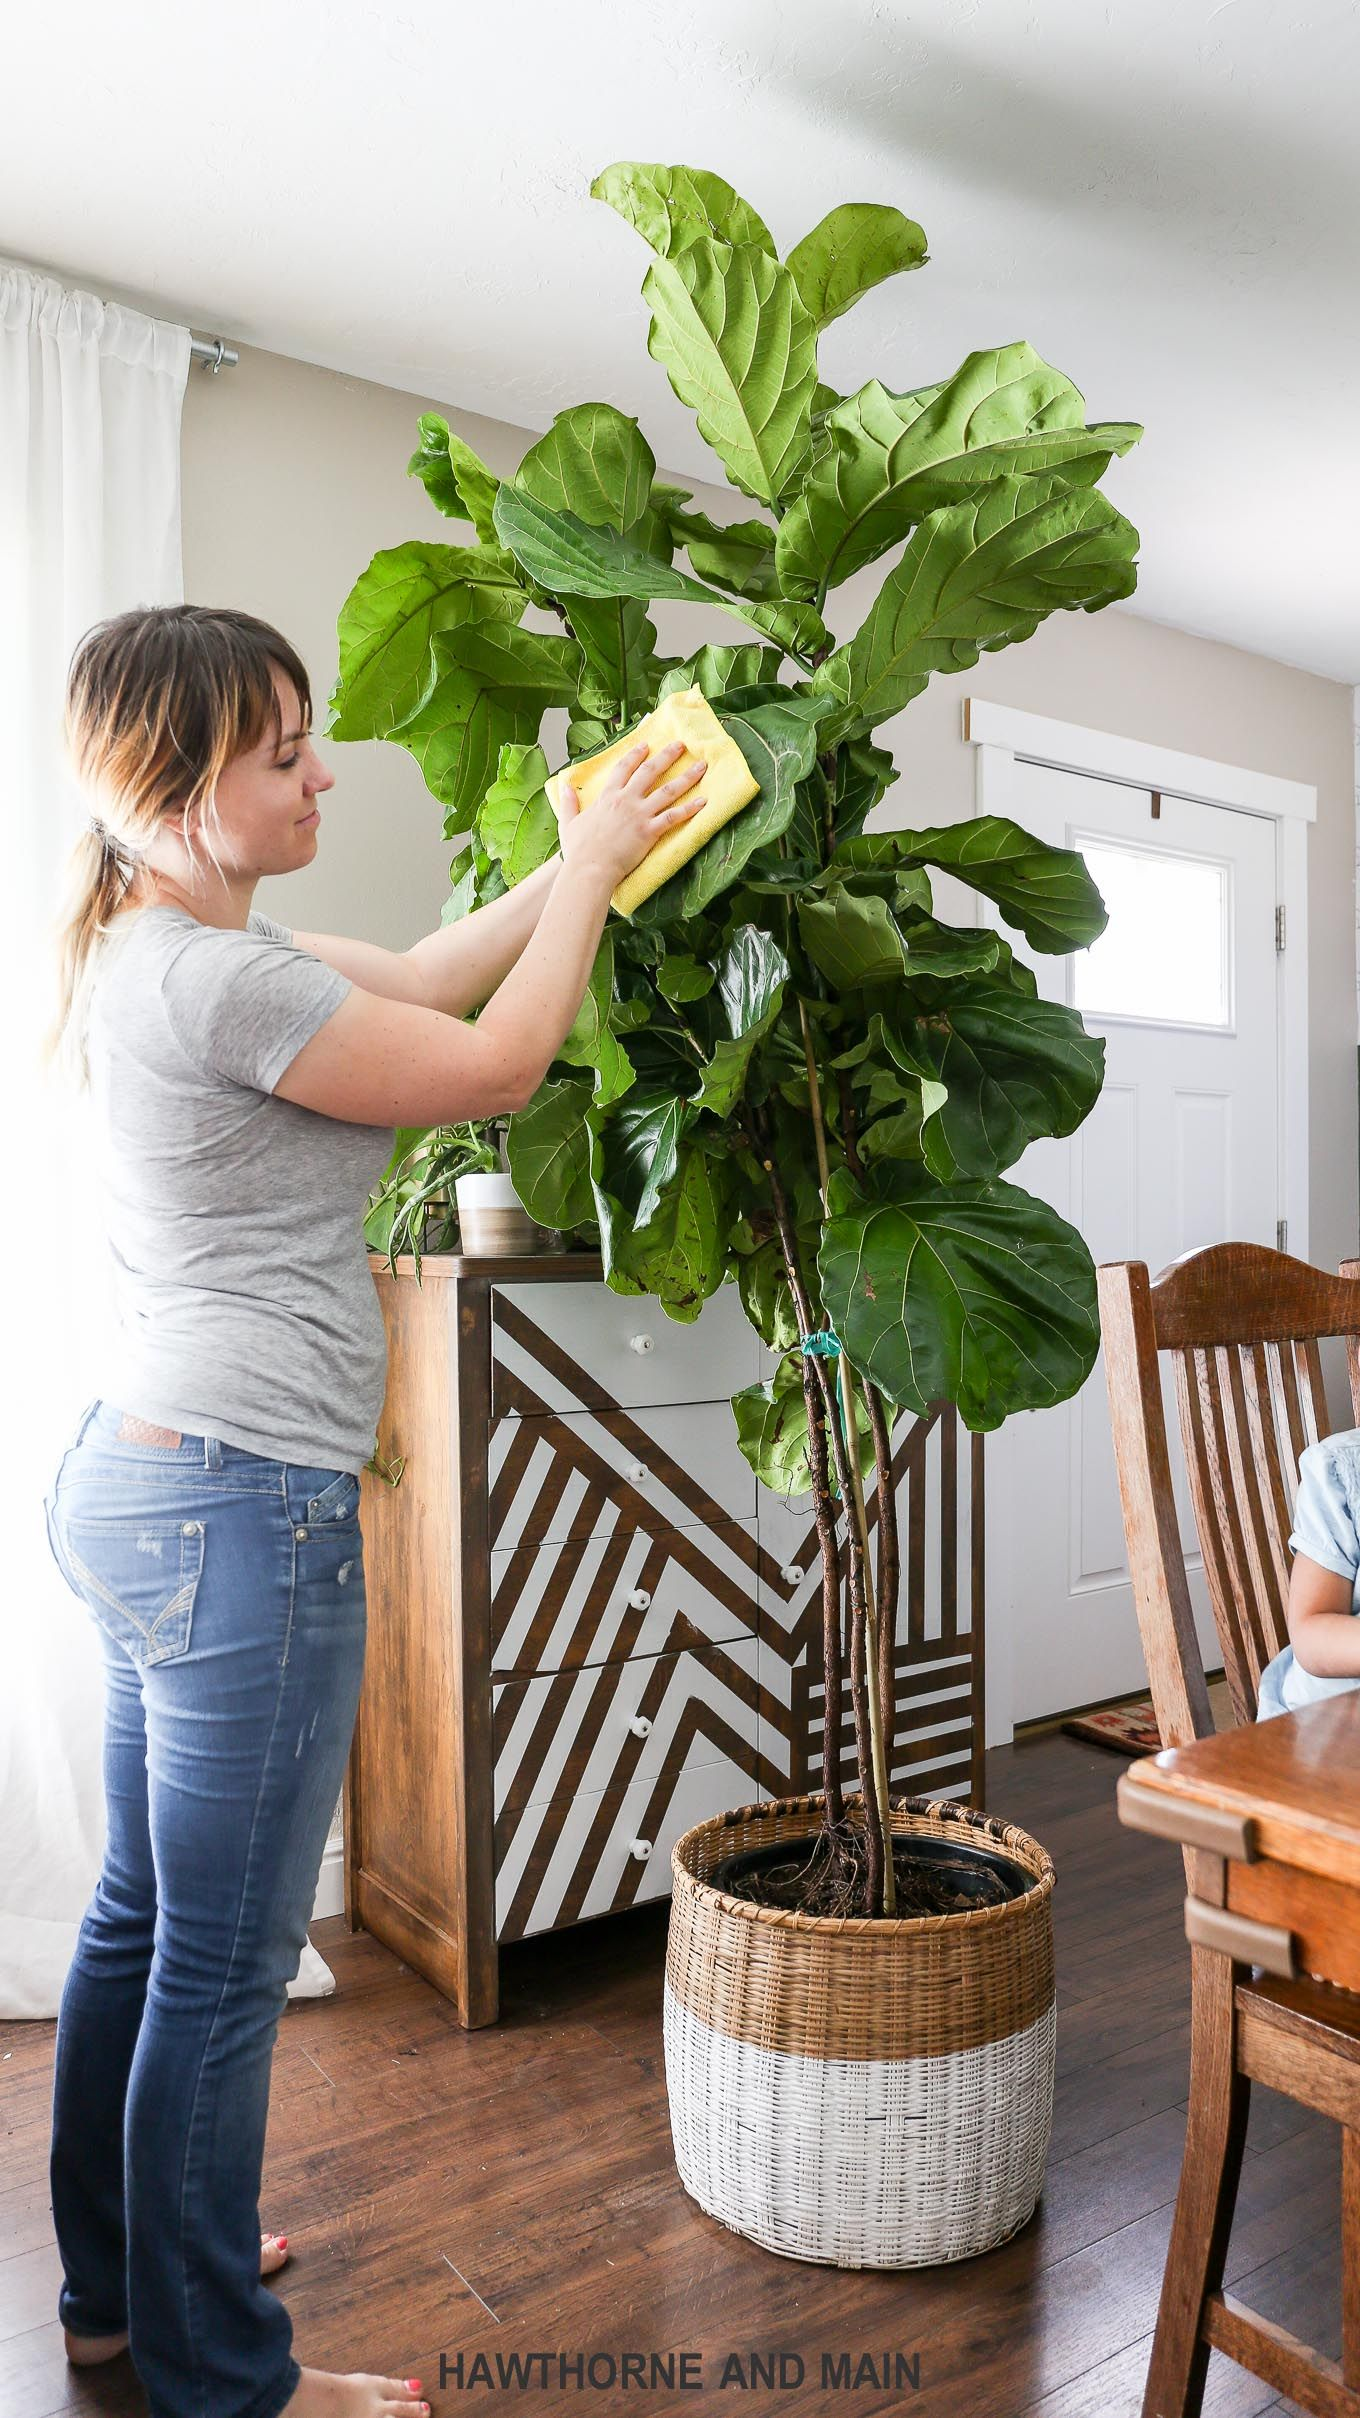 fig tree care on how to care for a fiddle leaf fig tree hawthorne and main plants fiddle leaf fig care fiddle leaf fig how to care for a fiddle leaf fig tree